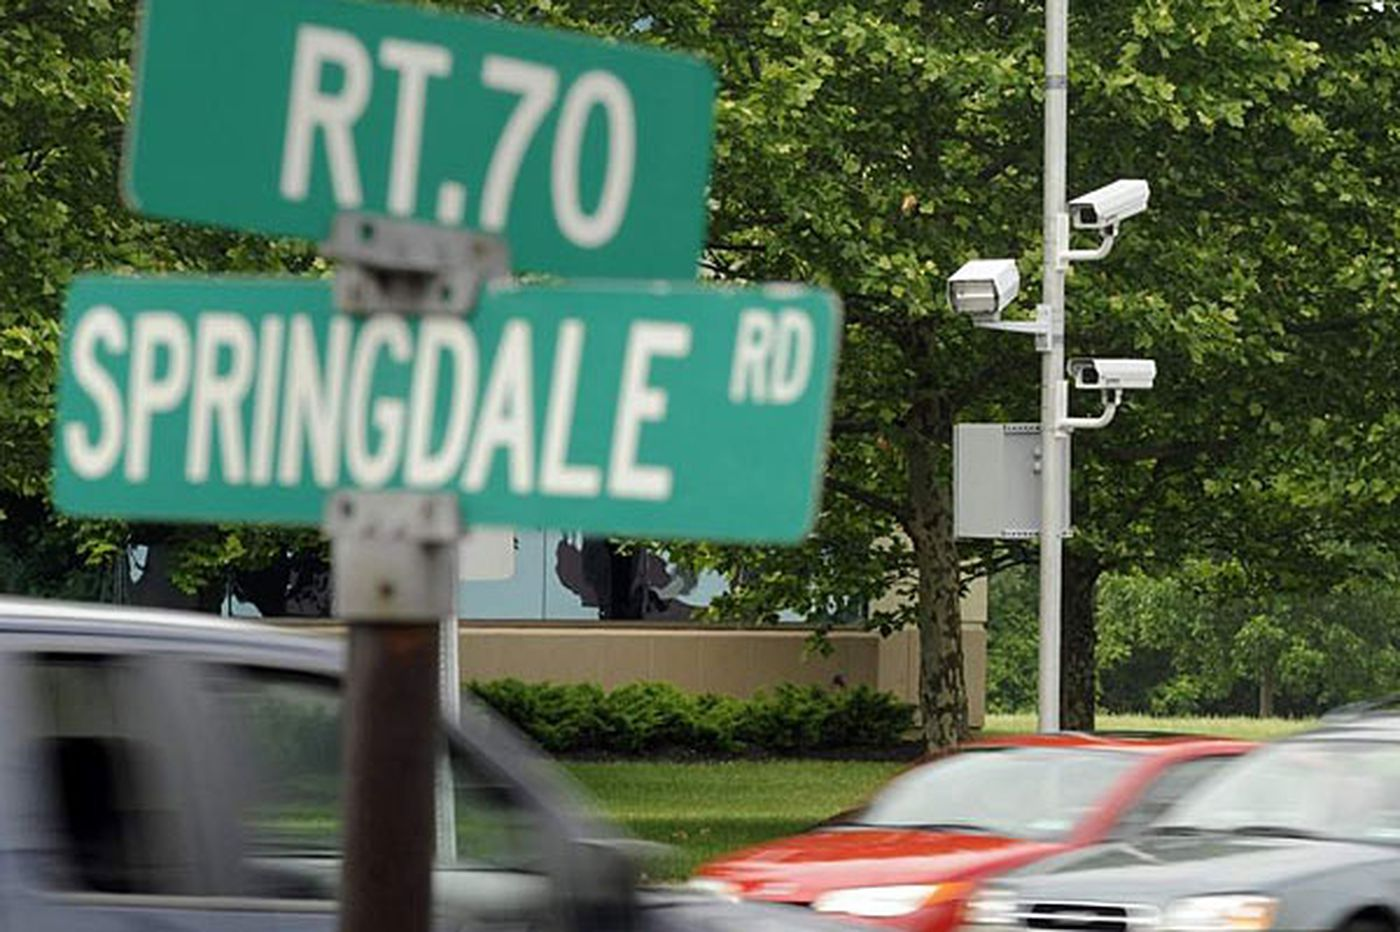 Report: NJ's 'meanest' red-light camera is in Cherry Hill